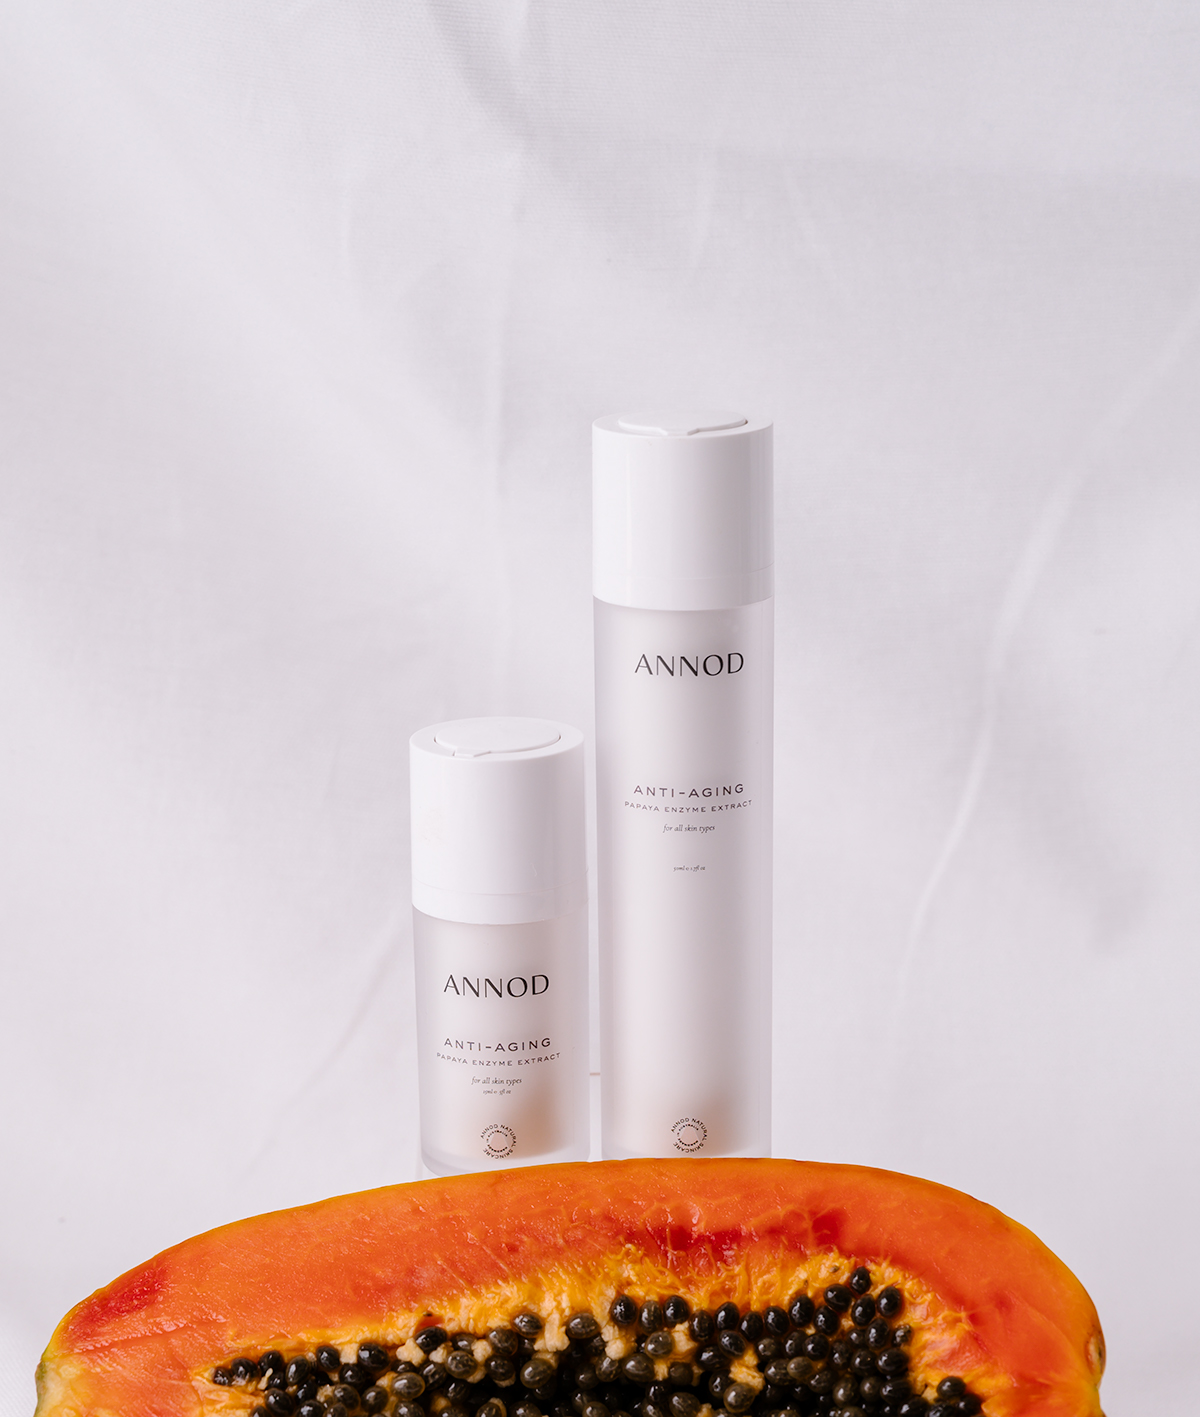 A set consisting a 30 ml and 100ml of Anti-Aging Papaya Enzyme extract with natural Papaya ingredient